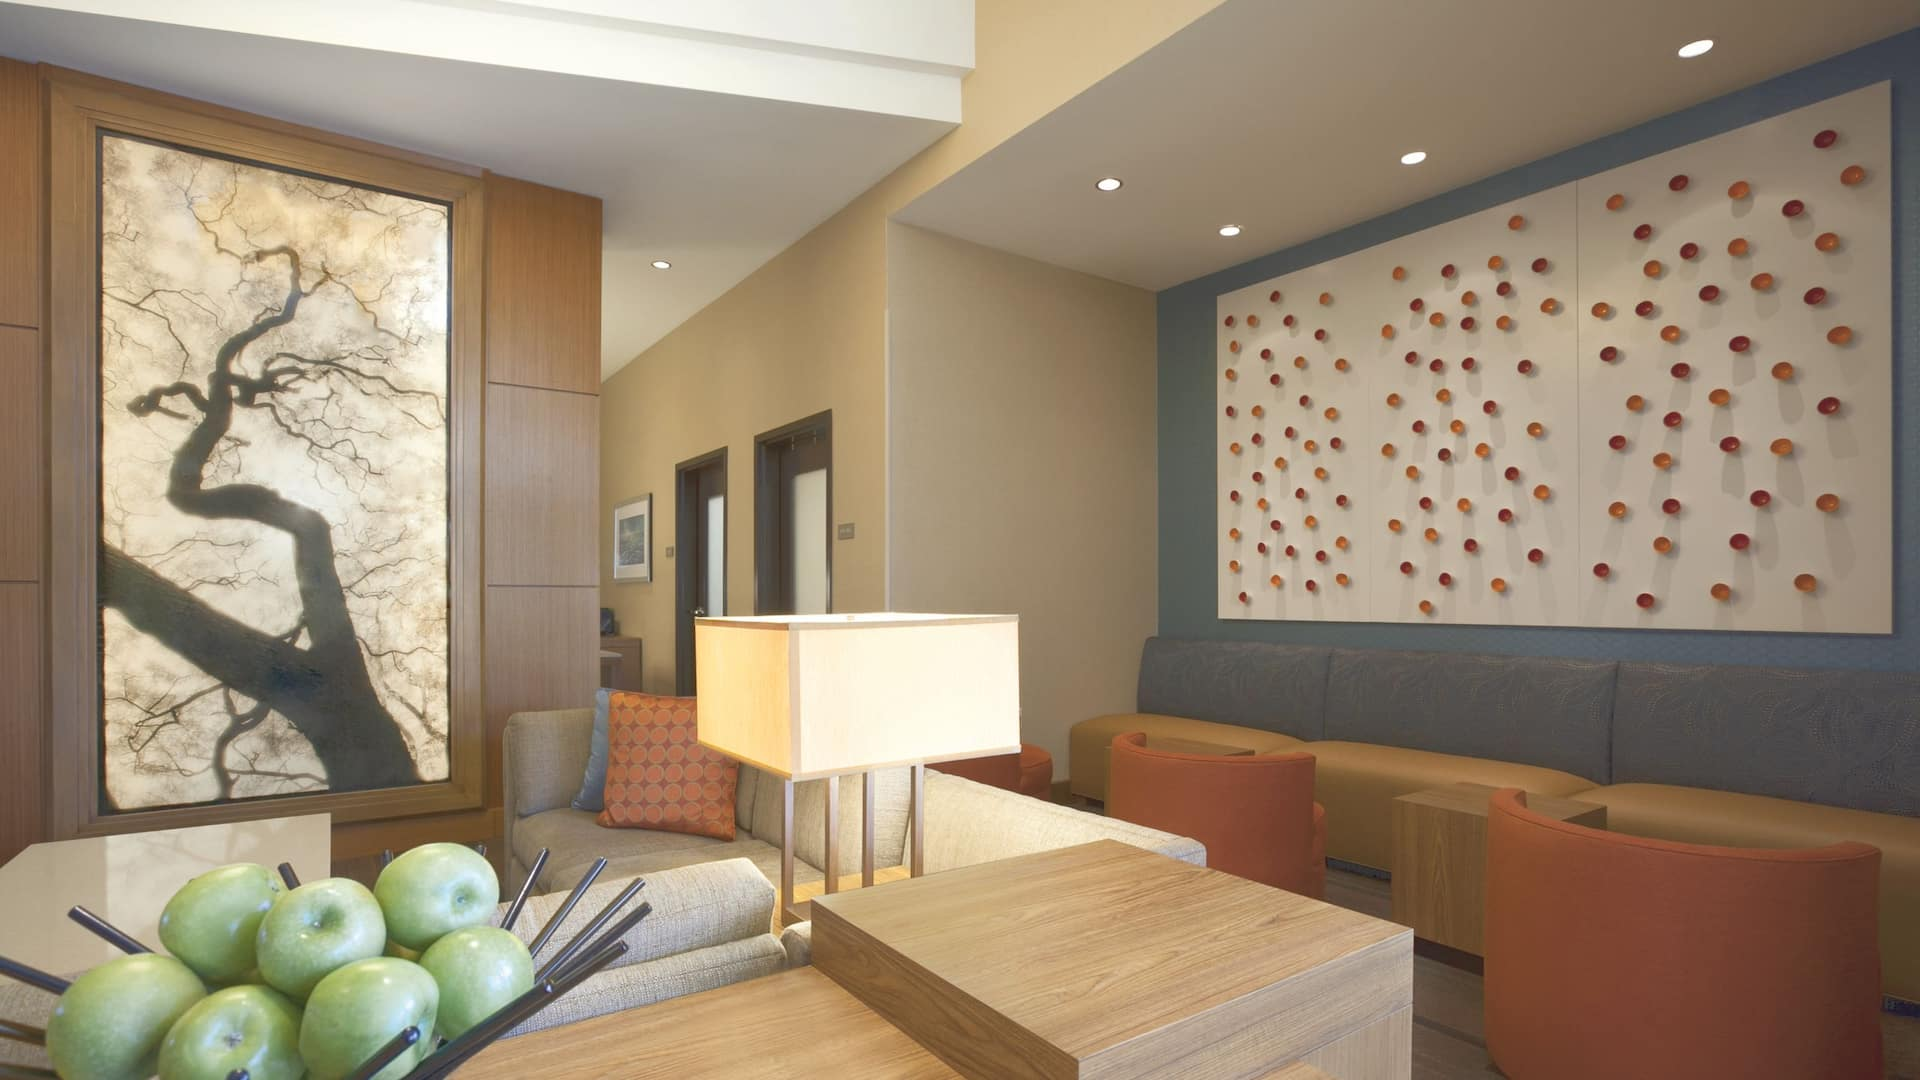 Hyatt Place Interior